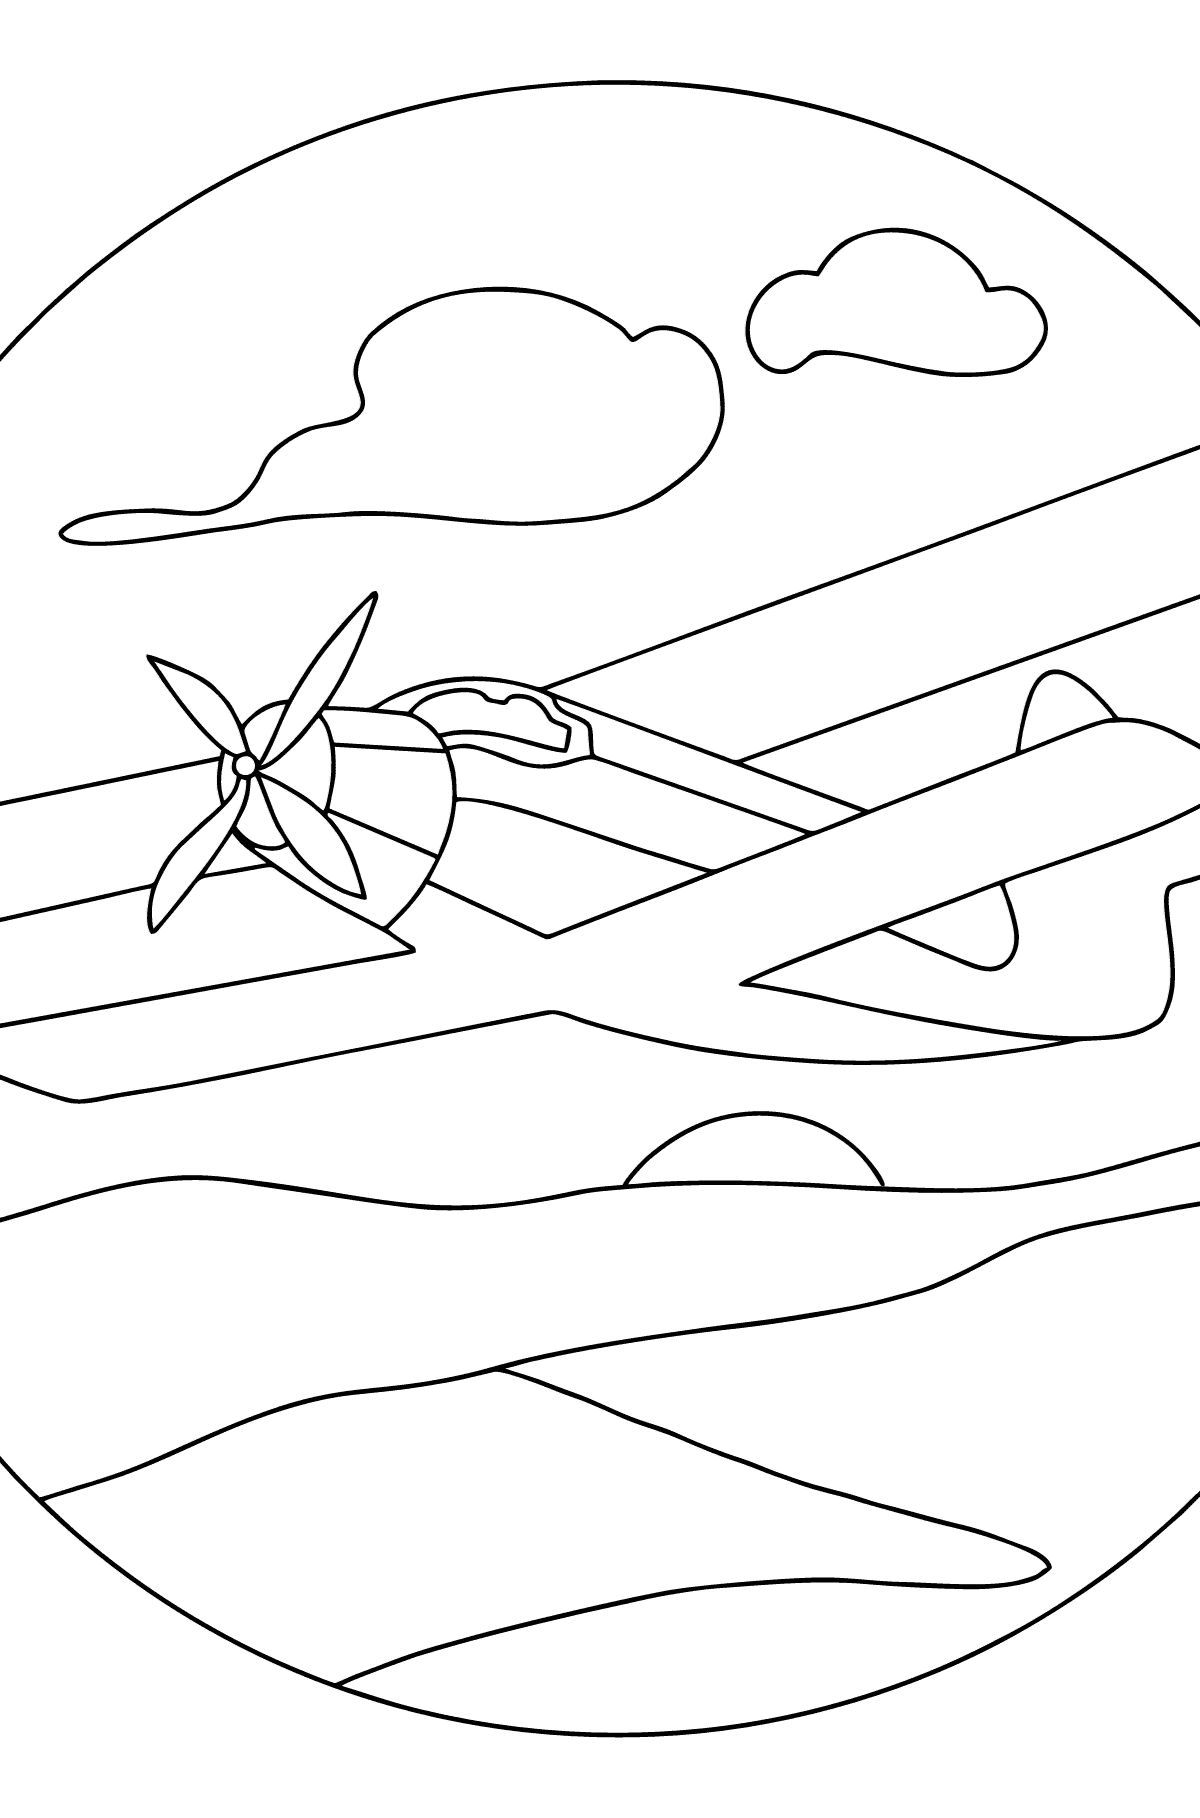 Coloring Page - A Biplane - Coloring Pages for Kids